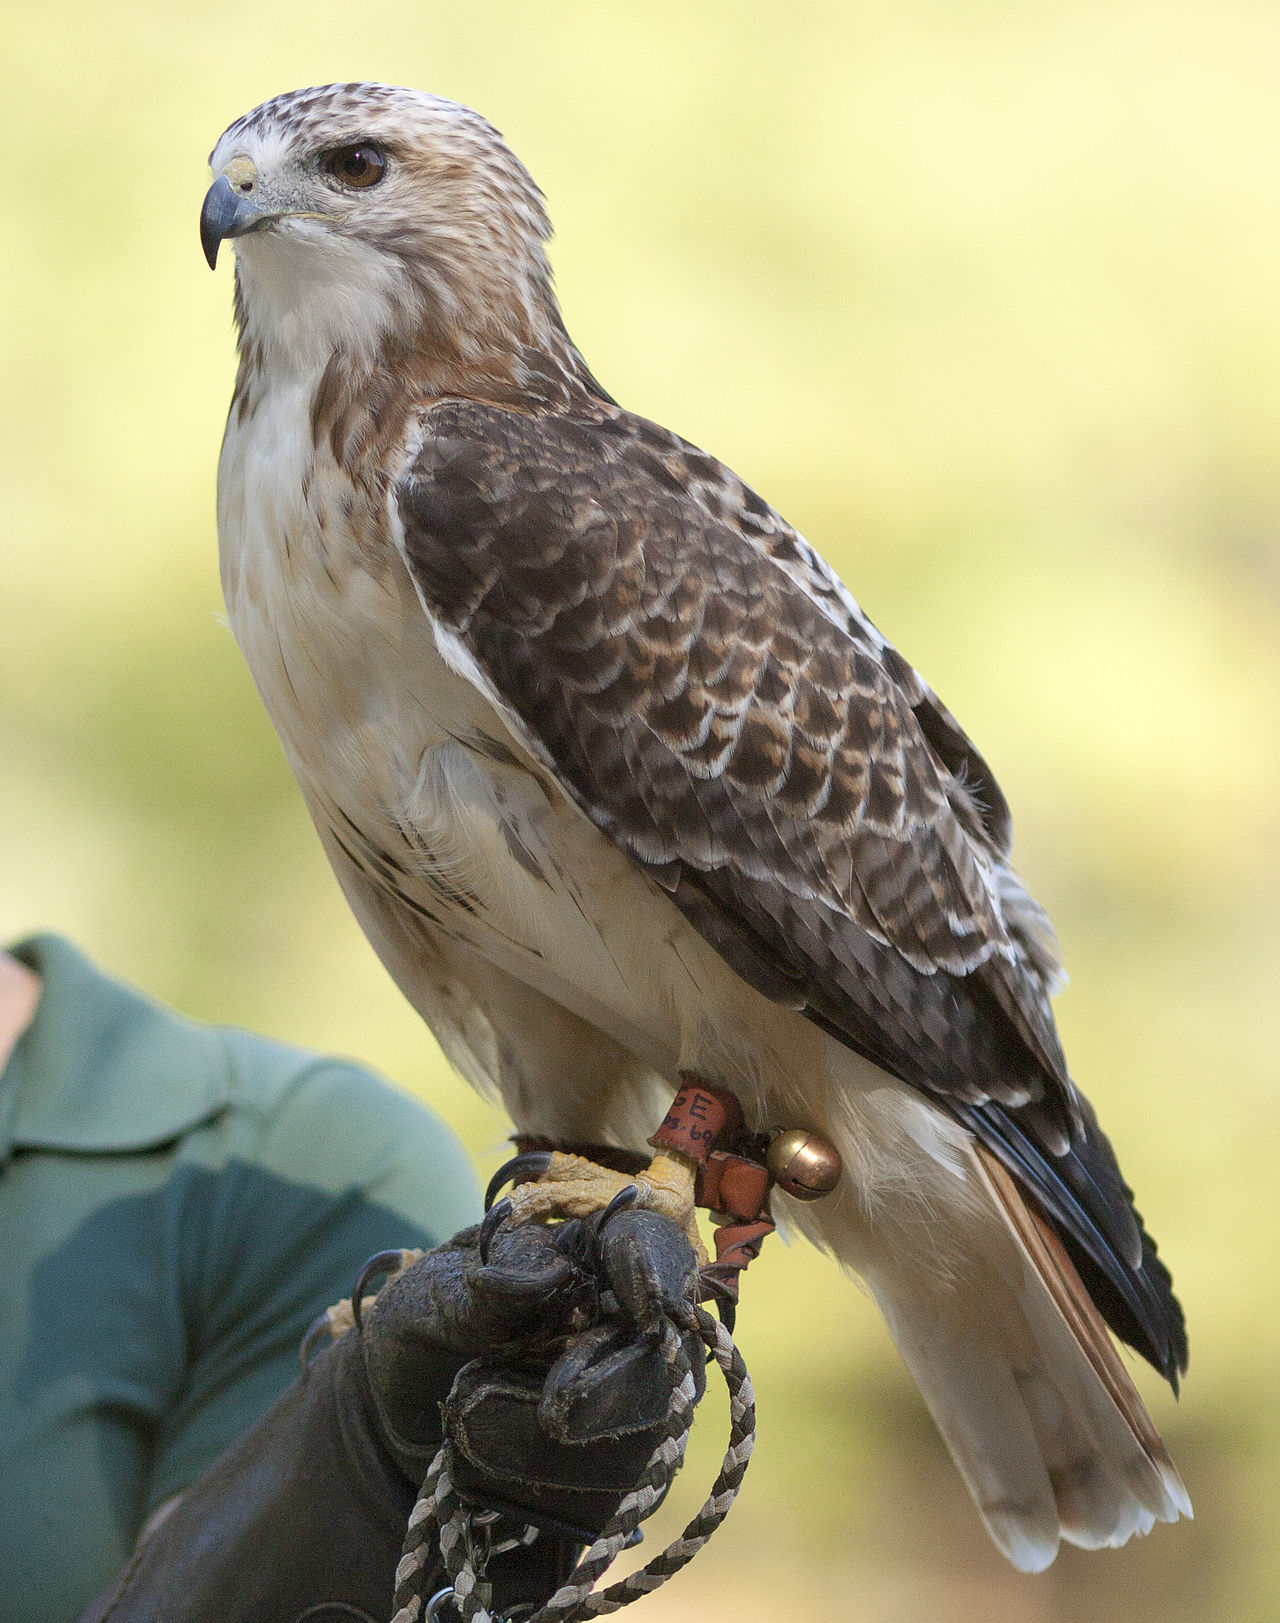 Animal Themes Animal Wildlife Animals In The Wild Bird Bird Of Prey Close-up Day Falcon - Bird Focus On Foreground Hawk Nature No People One Animal Outdoors Perching